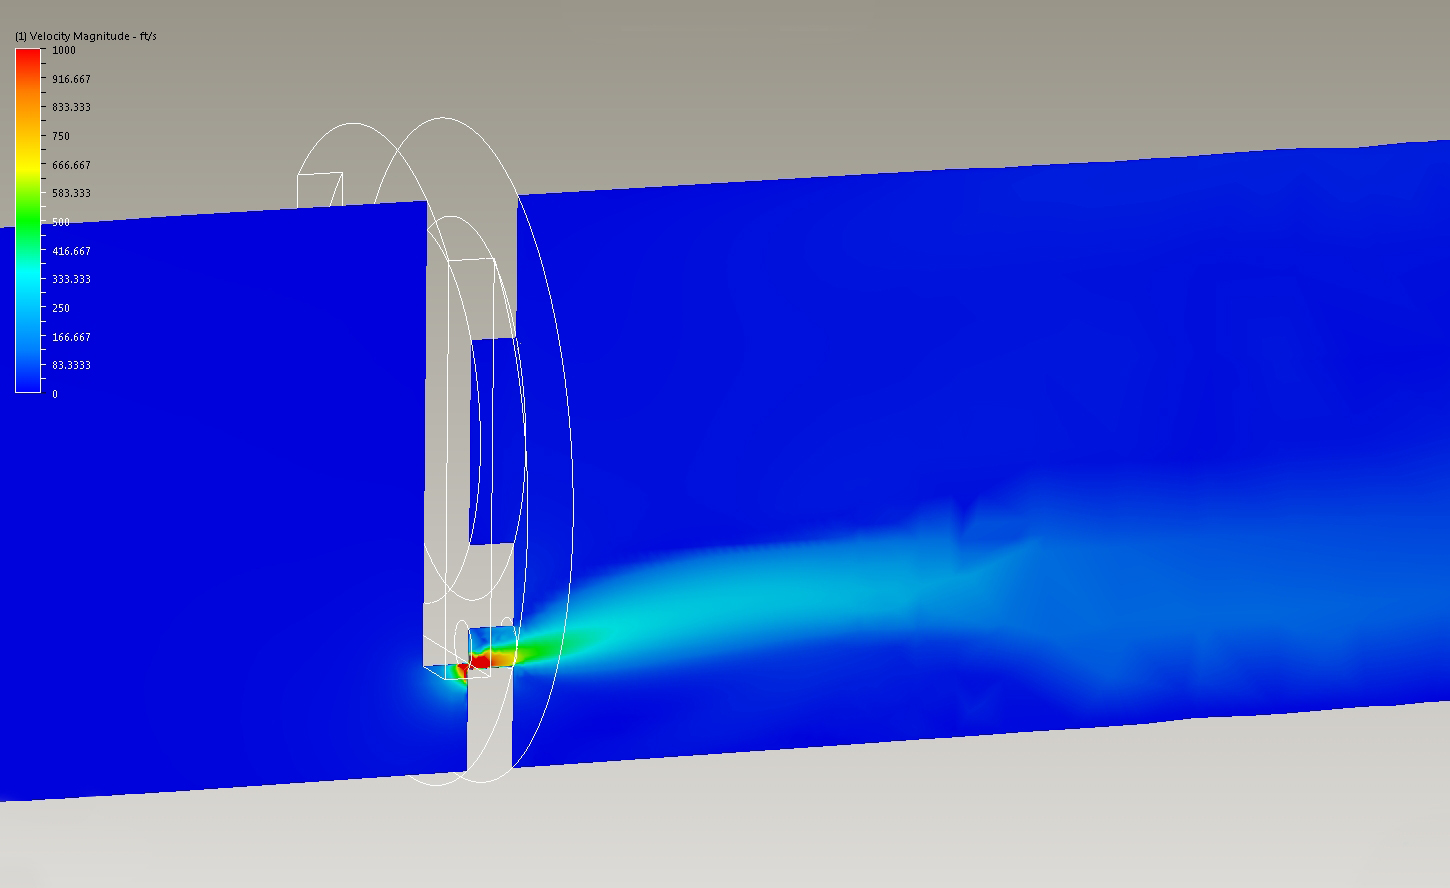 CFD simulation displaying the flow conditions for the two small orifices.